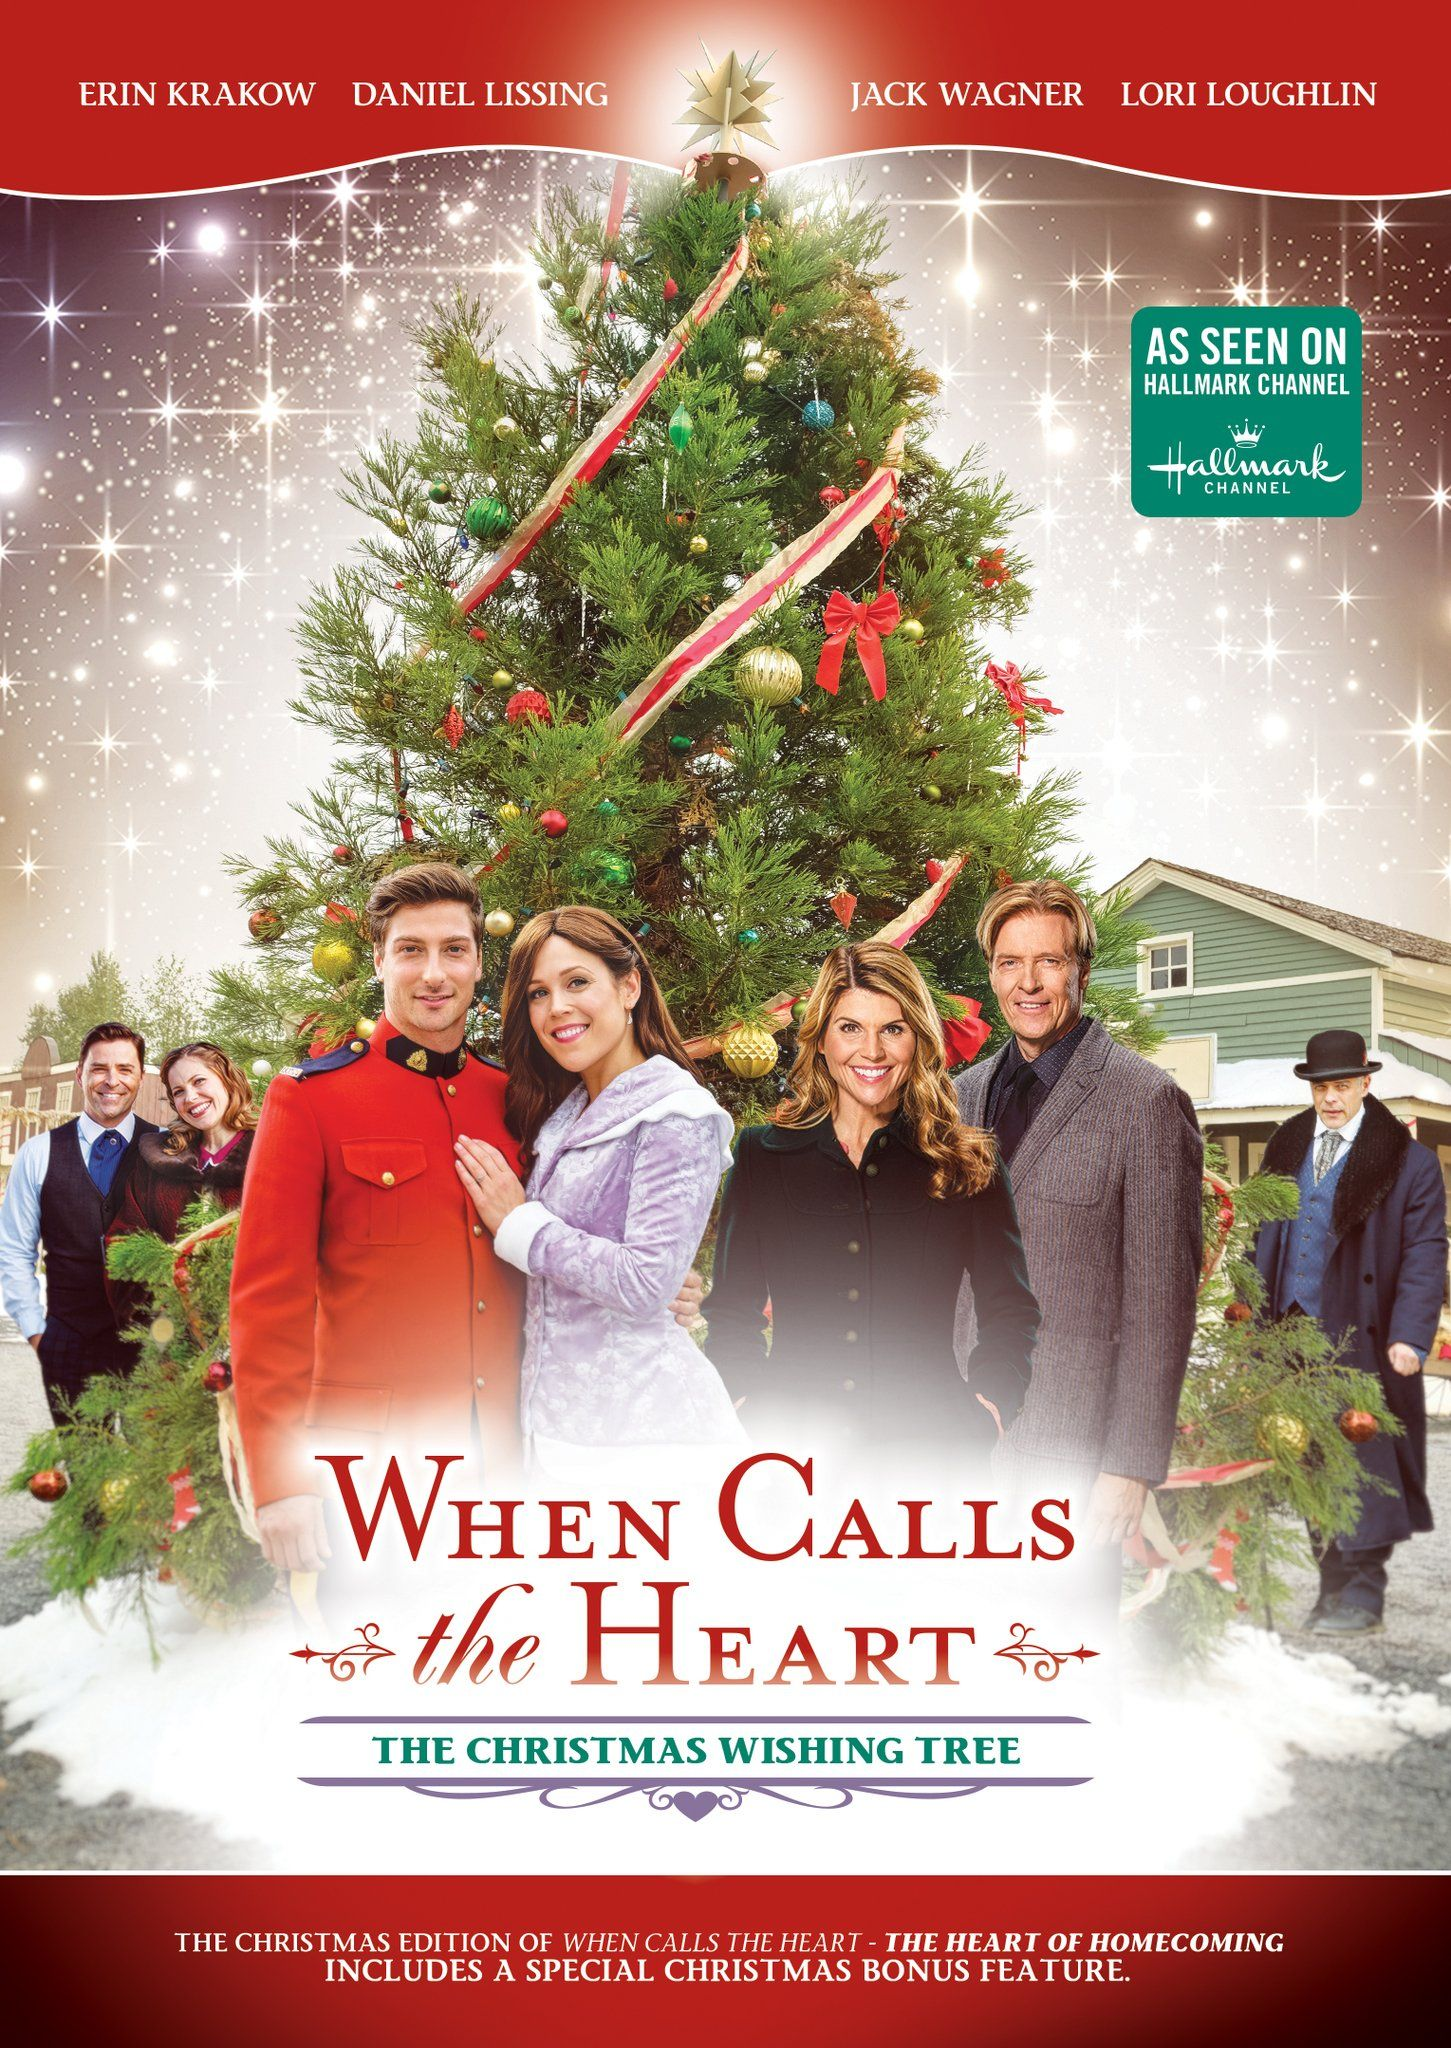 When Calls The Heart 2020 Christmas Tree Pin by Arlene Gilchrist on When Calls The Heart in 2020